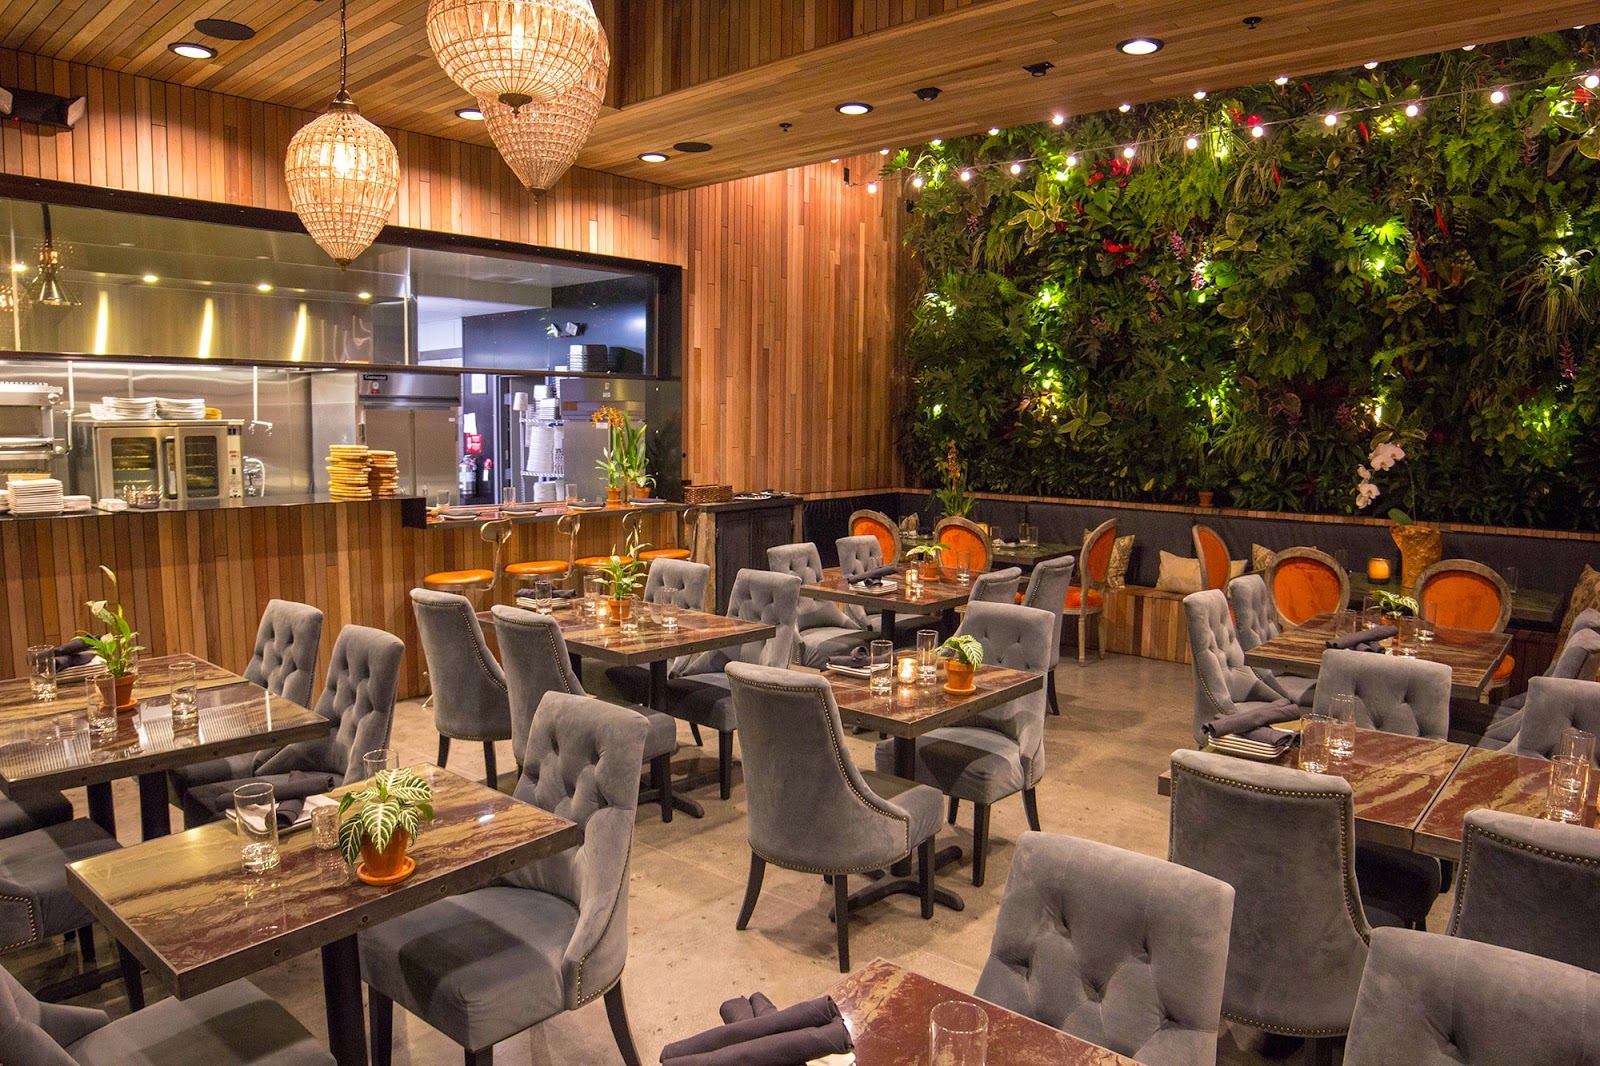 Similar To The Original Pacific Beach Location On Lamont St., The Patio On  Goldfinch Is A Cozy, Unique And Fun Place To Enjoy Craft Cocktails, An  Extensive ...